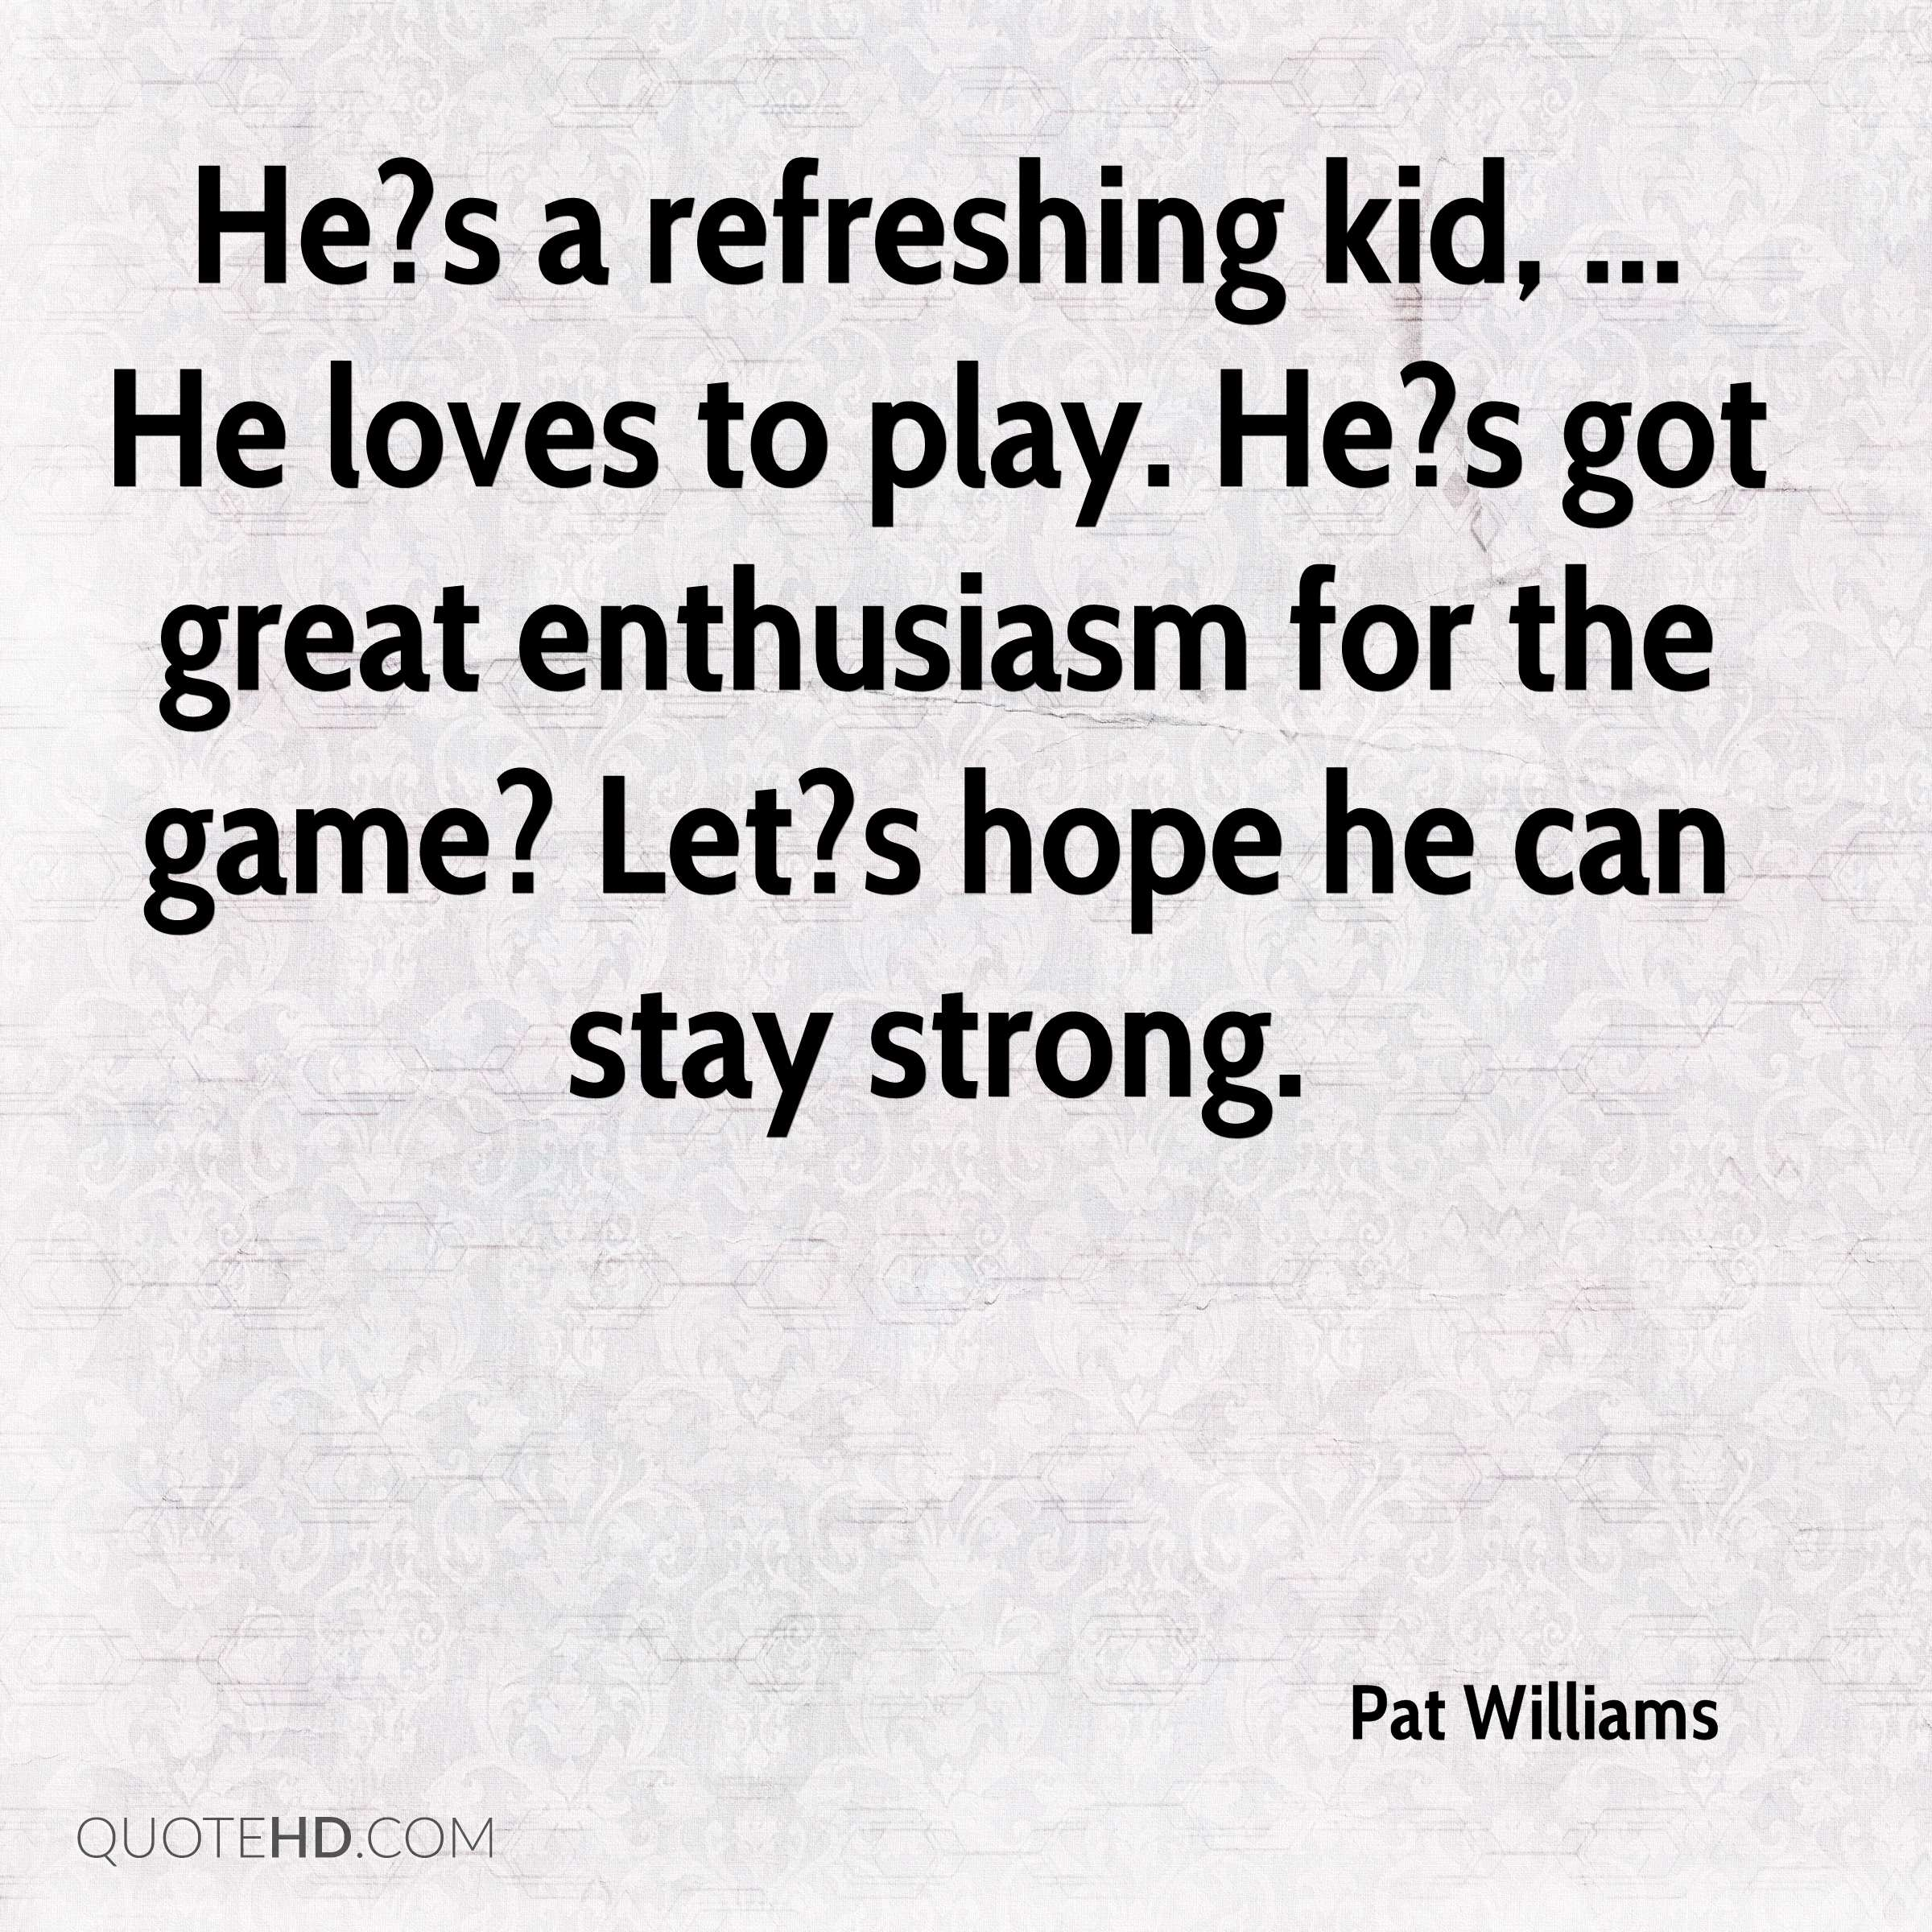 He?s a refreshing kid, ... He loves to play. He?s got great enthusiasm for the game? Let?s hope he can stay strong.